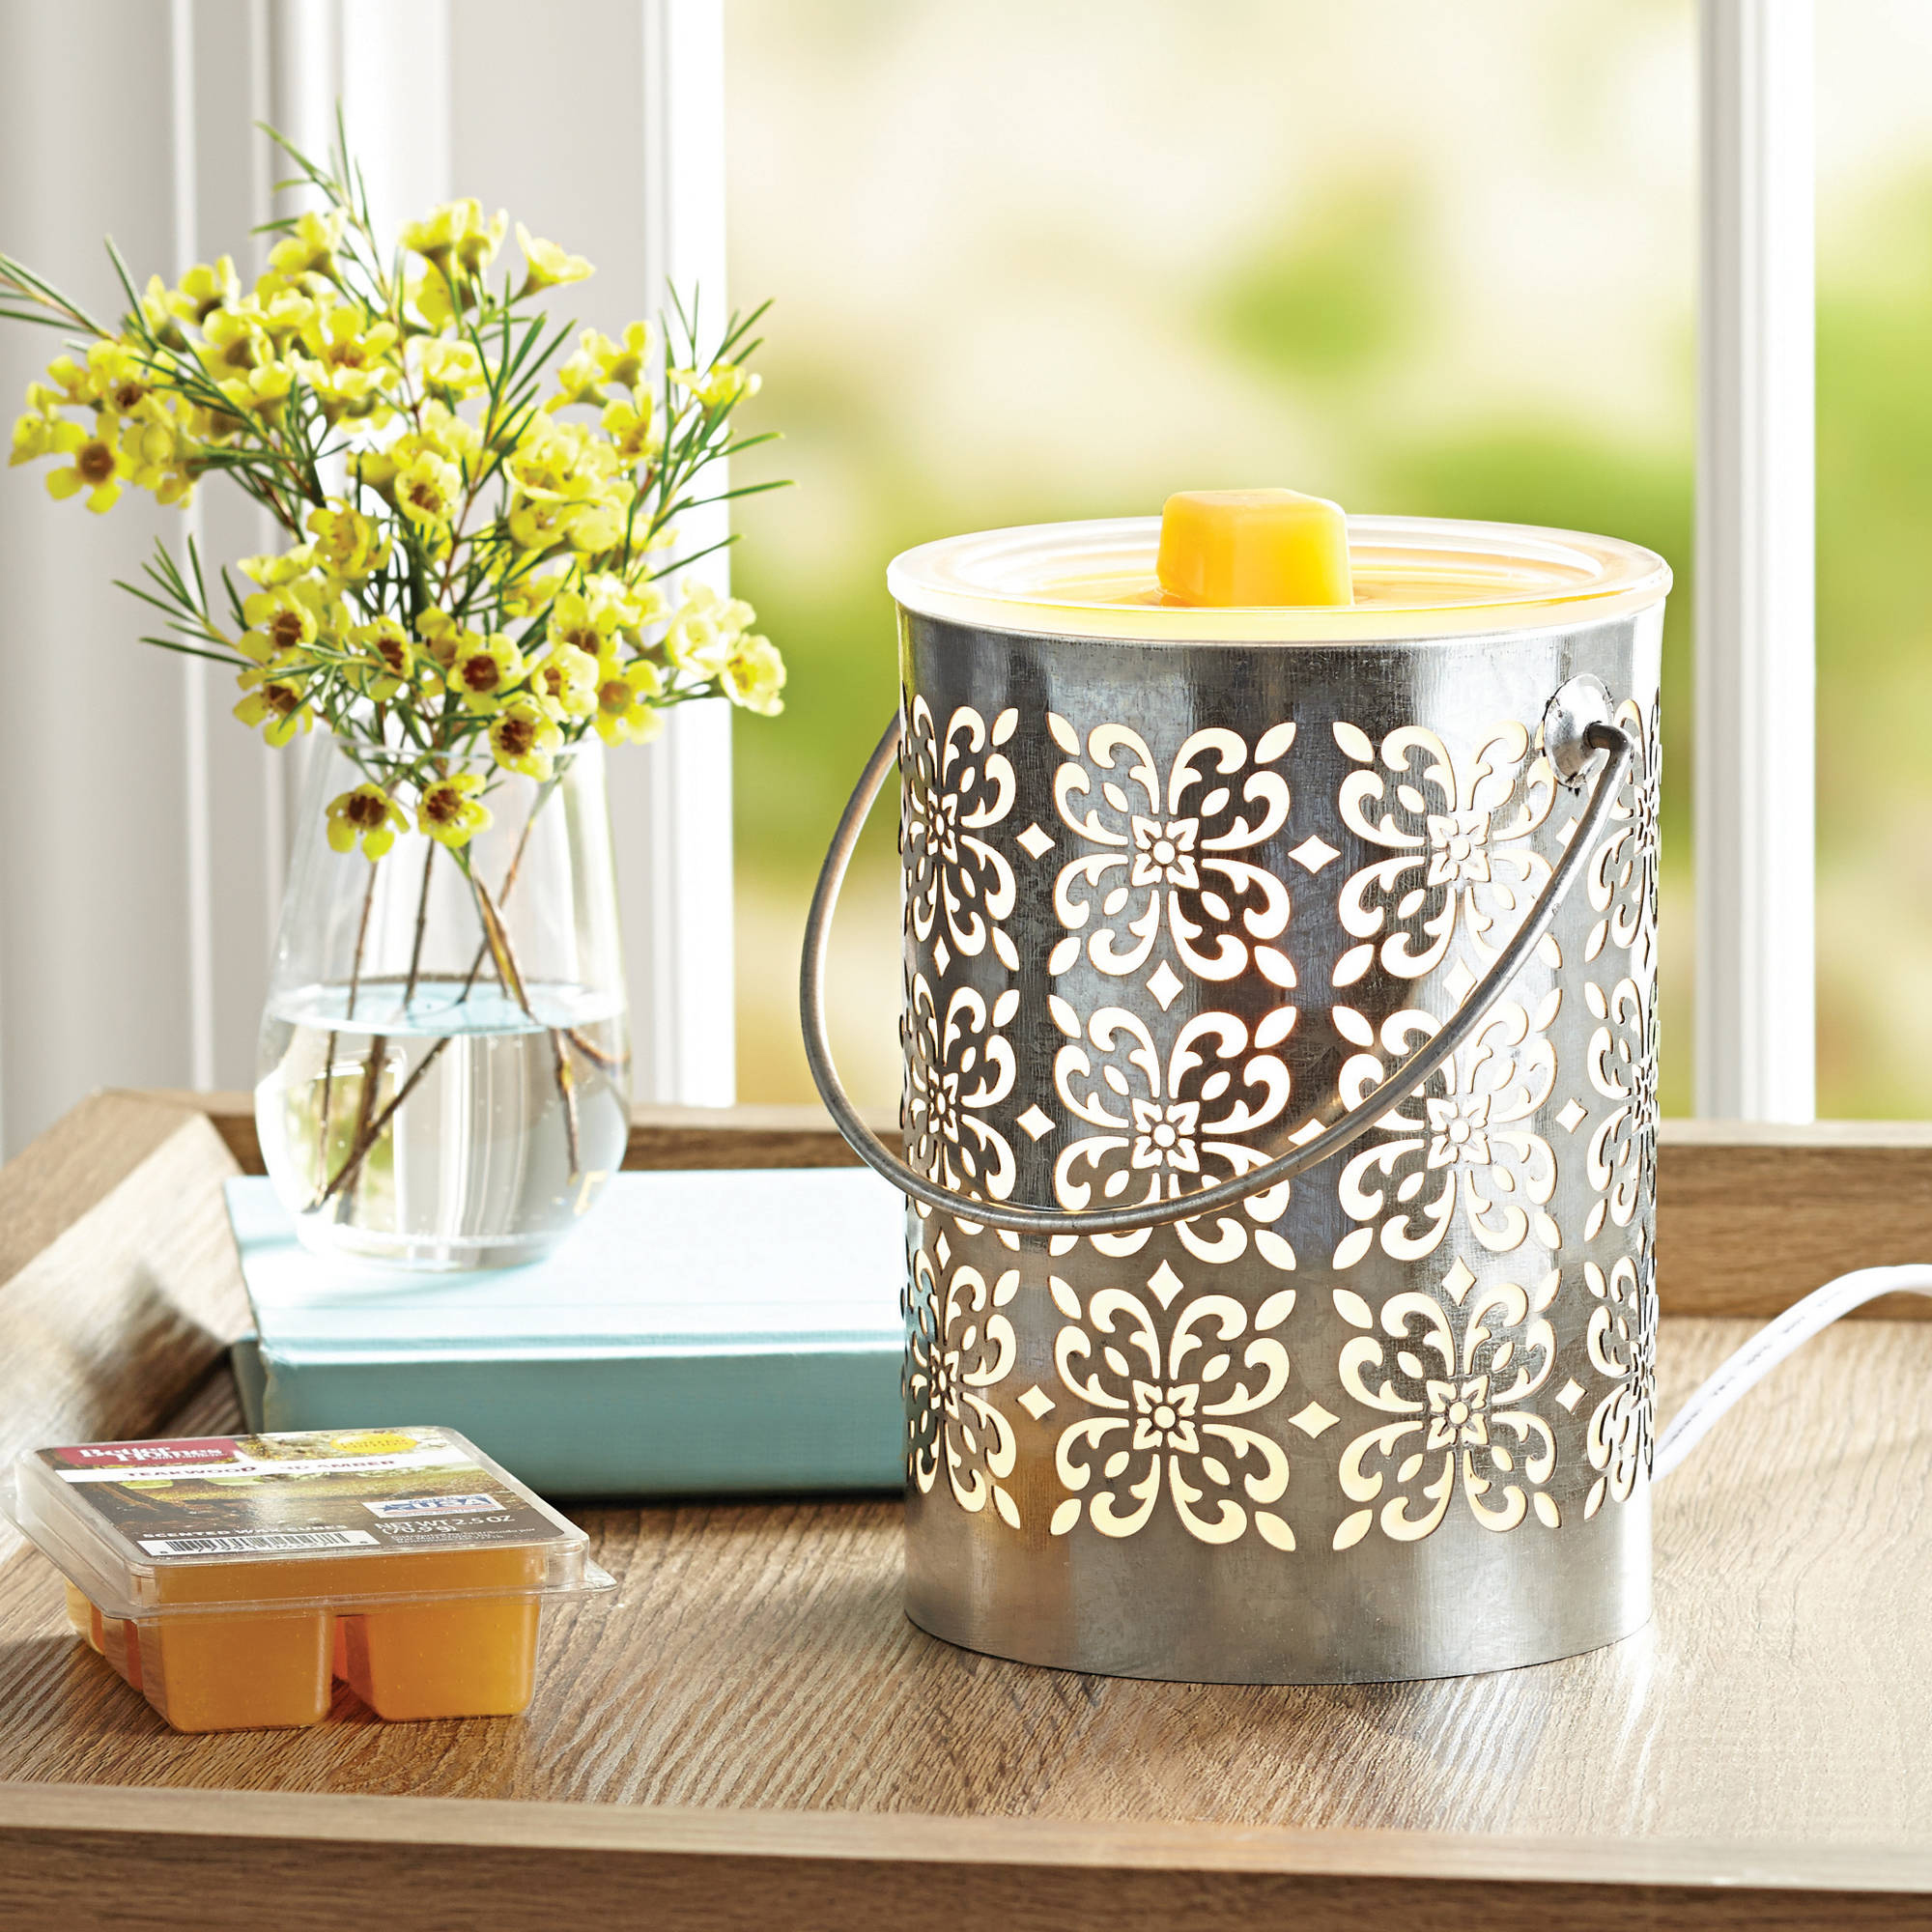 Better Homes and Gardens 4 Piece Wax Warmer Gift Set - Concord, $29 Value